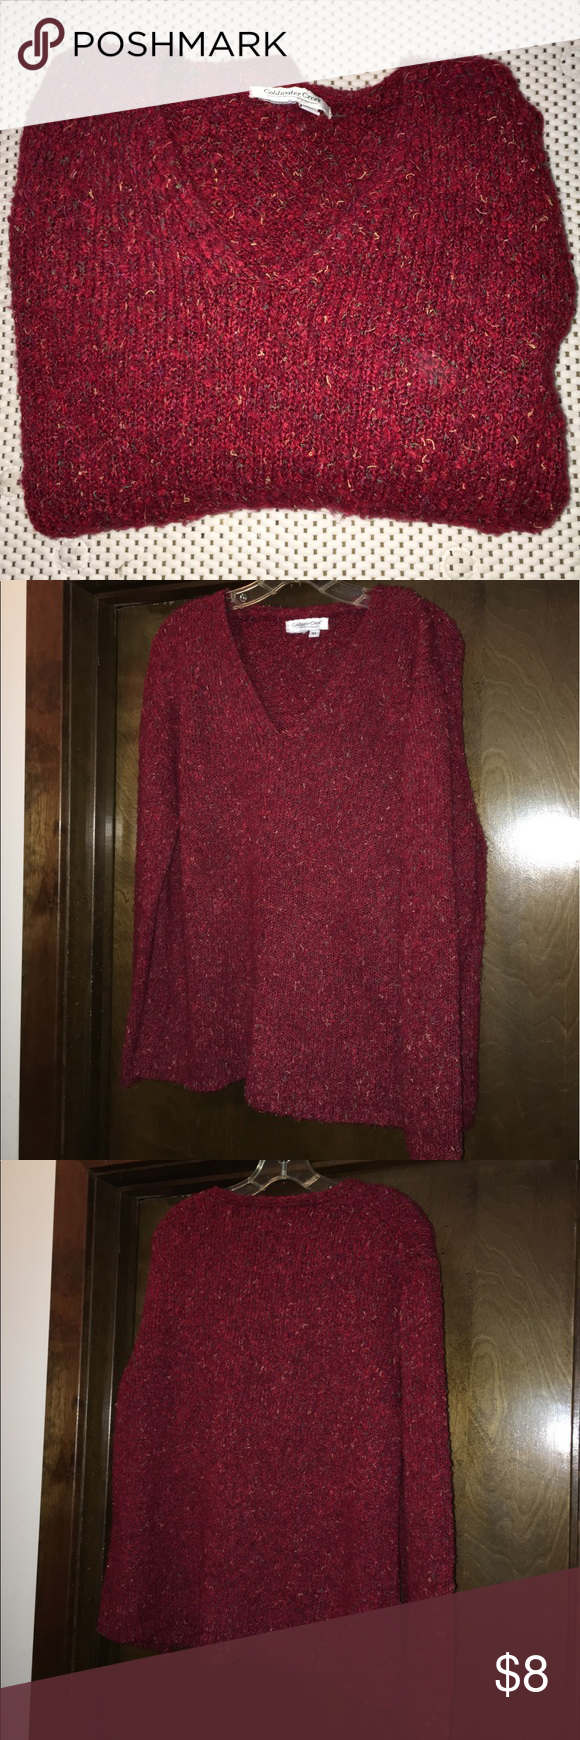 Coldwater Creek Dk Red Sweater PRE FALL | Coldwater creek, Red ...